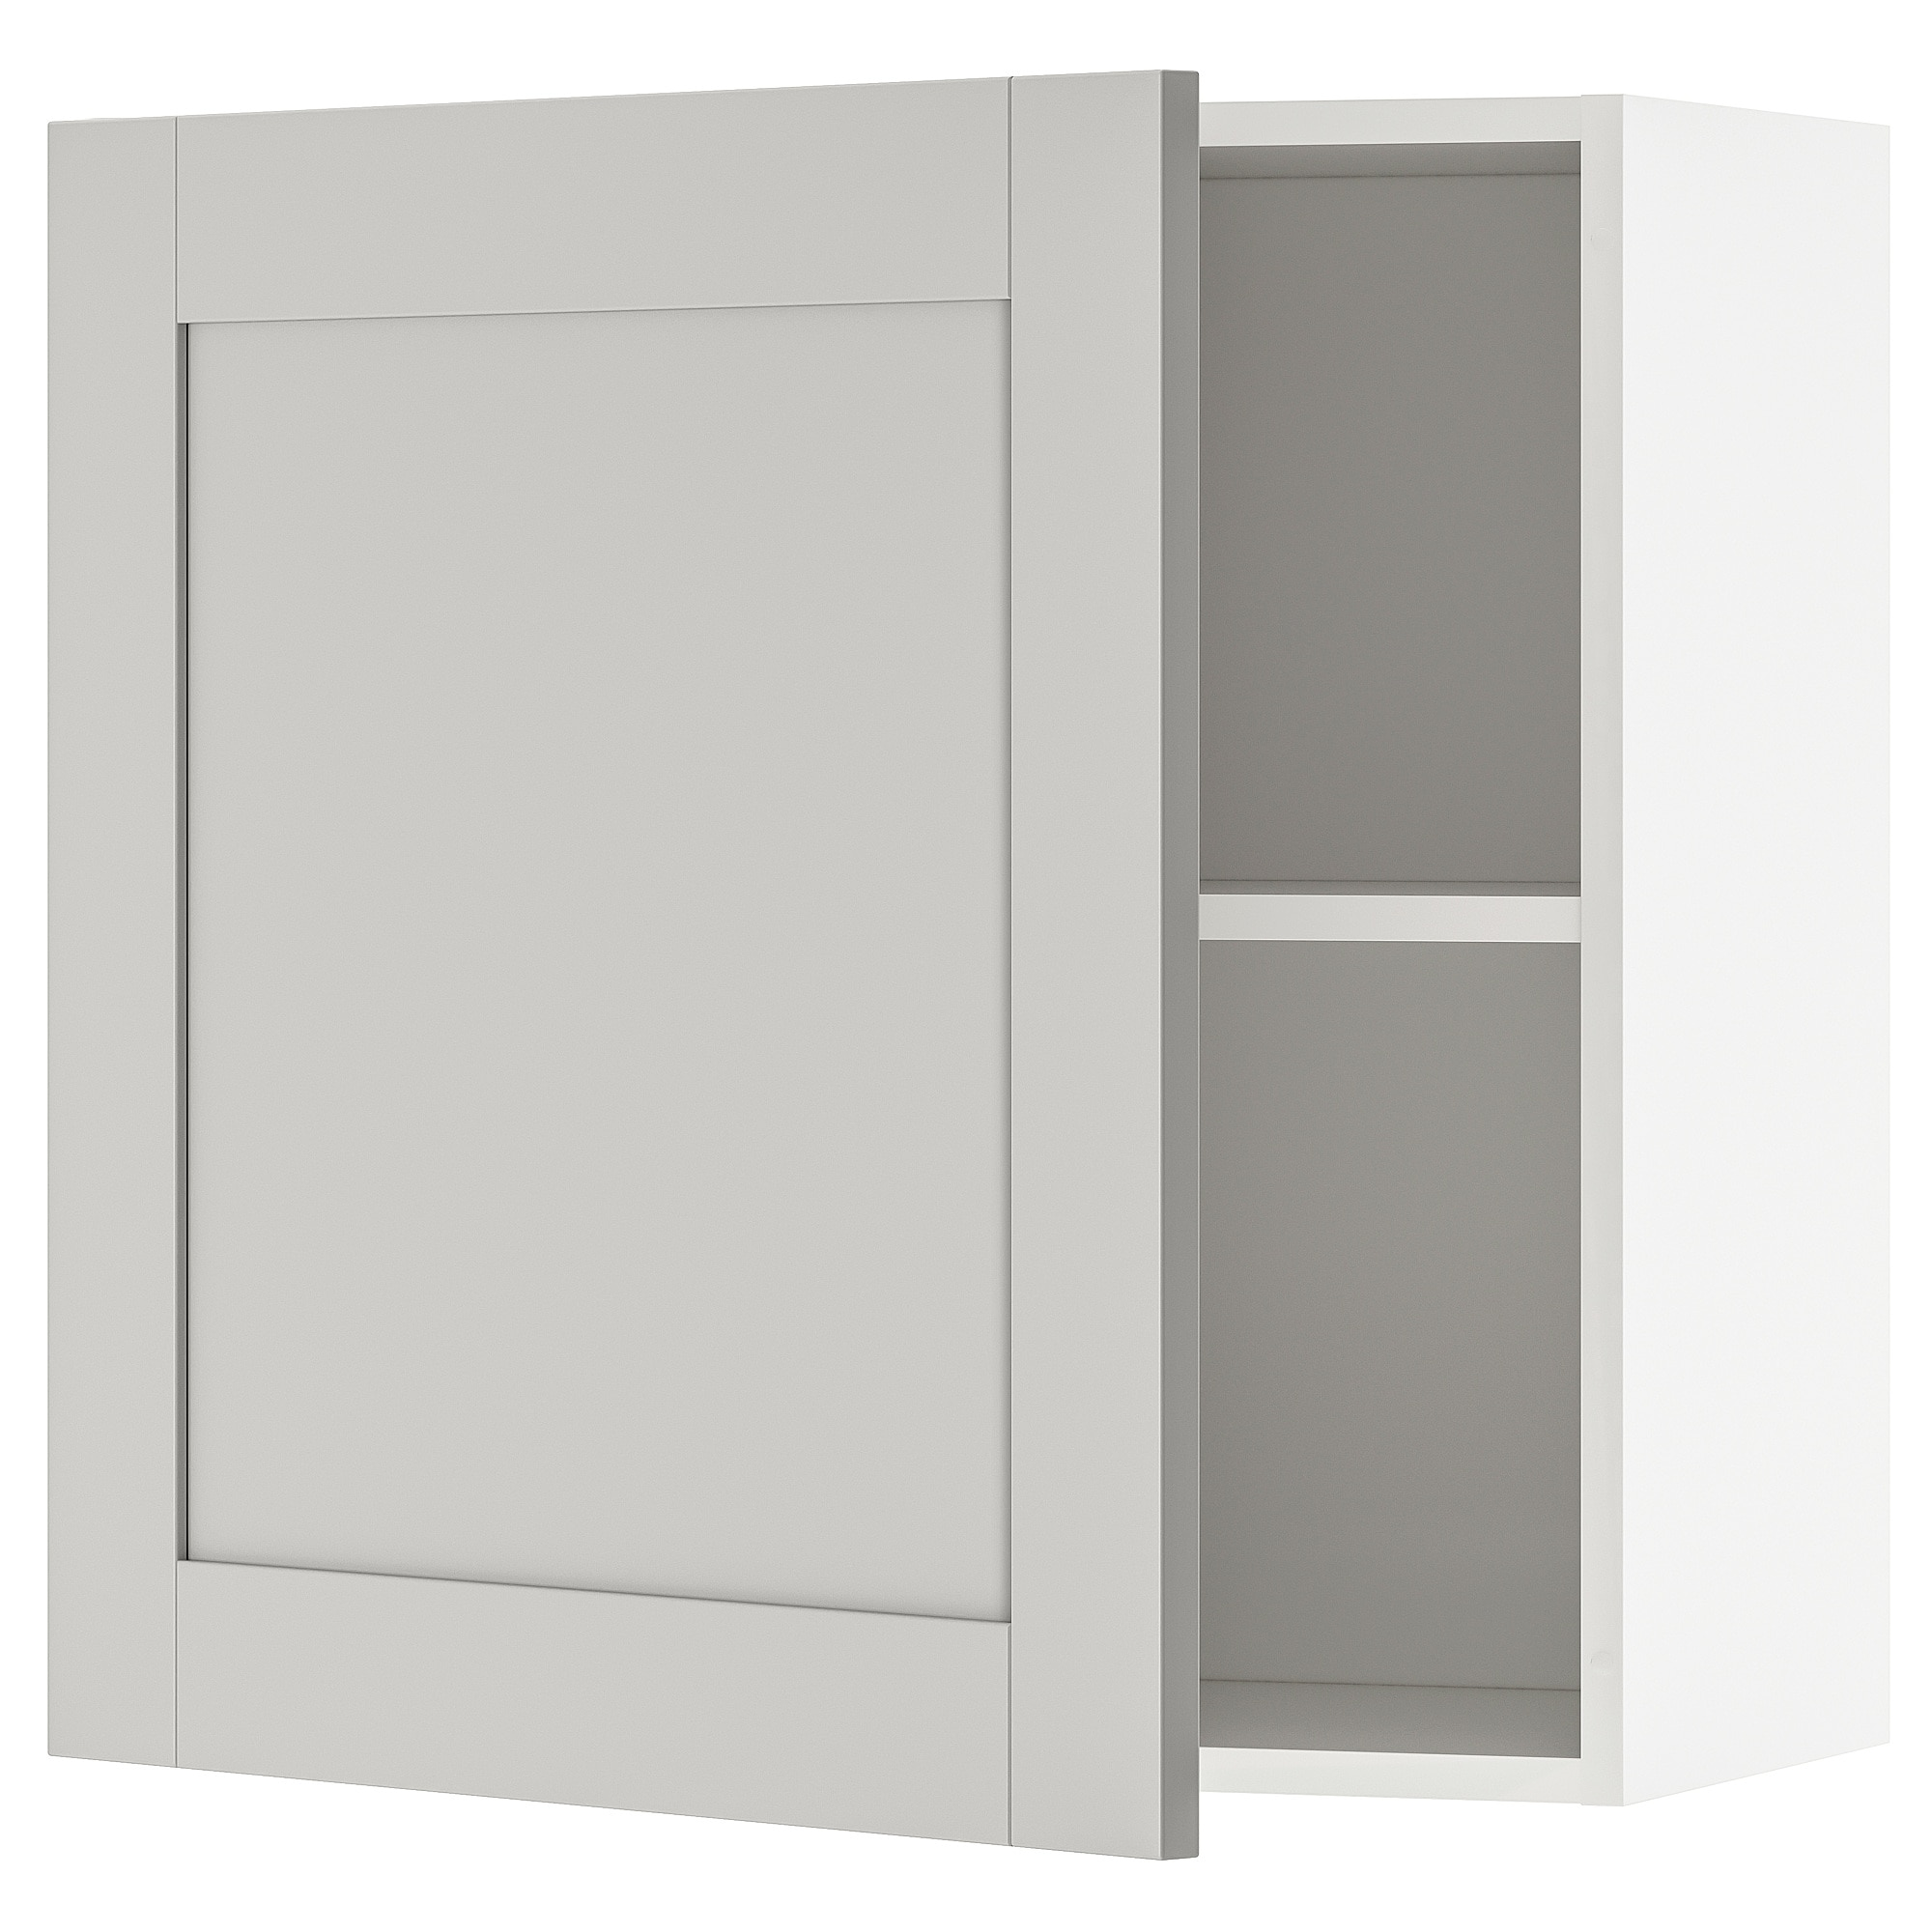 Wall Cabinet With Door Knoxhult Grey